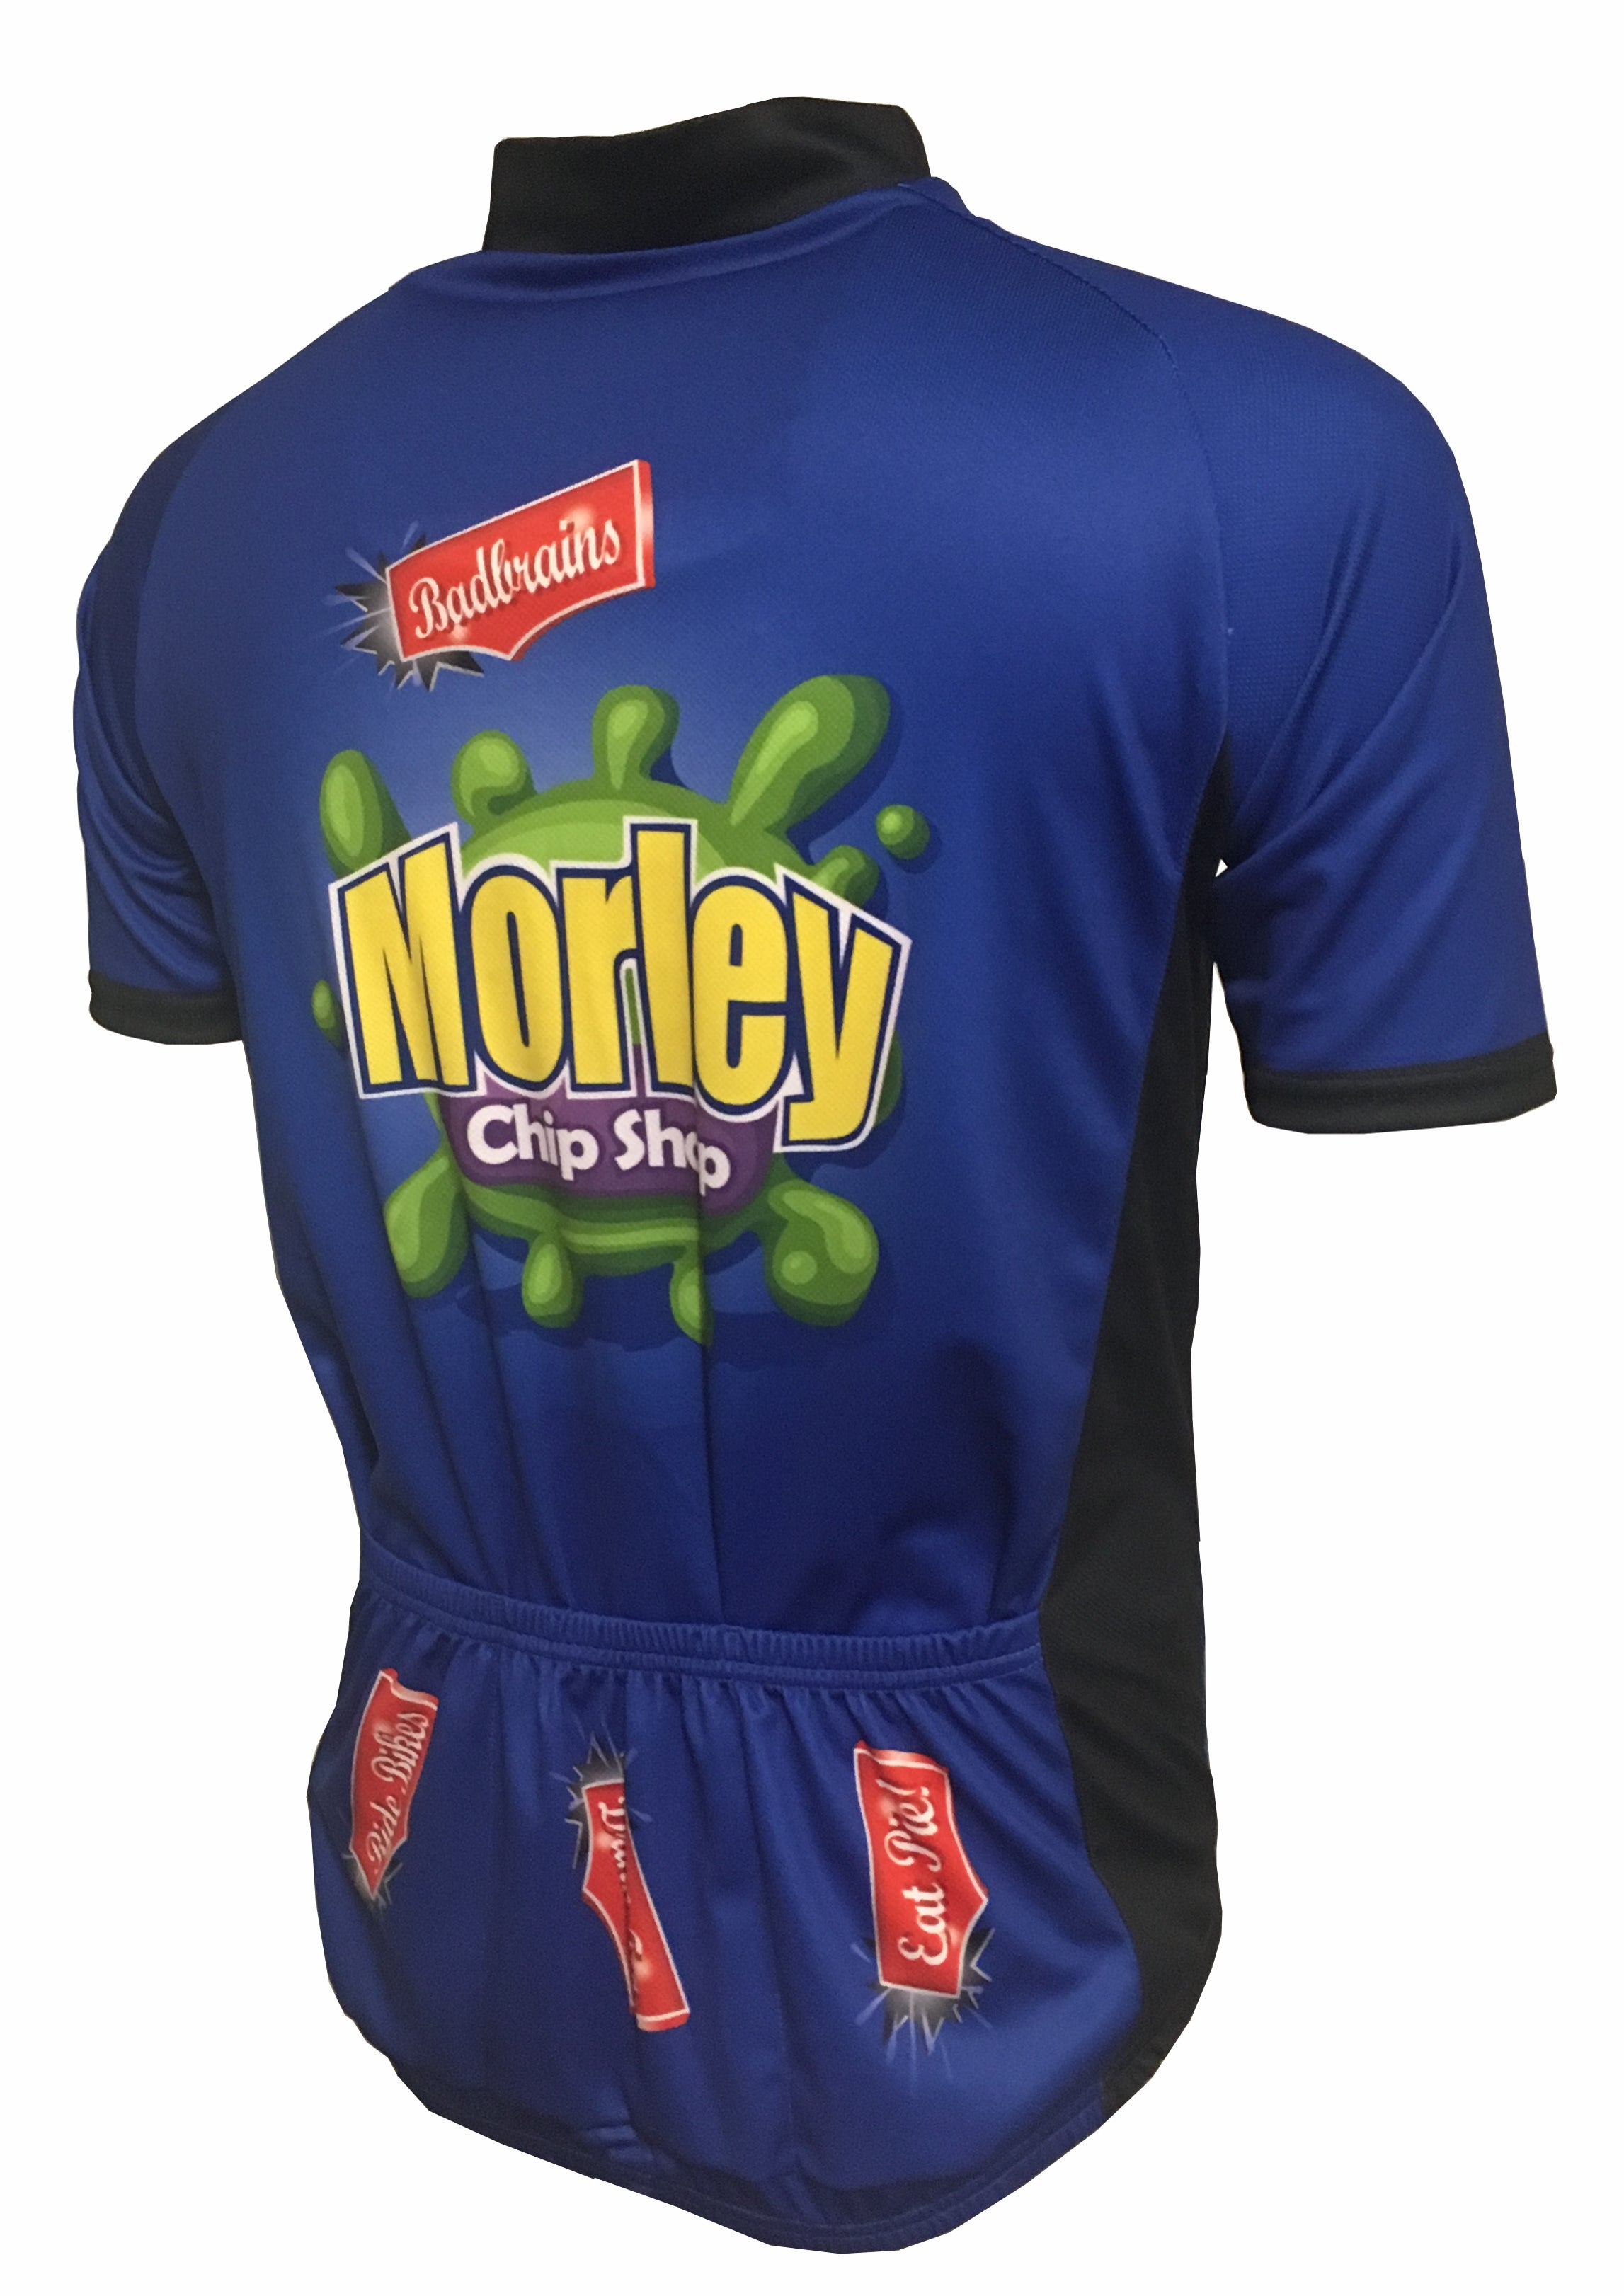 Morley Chip Shop Road Jersey Back